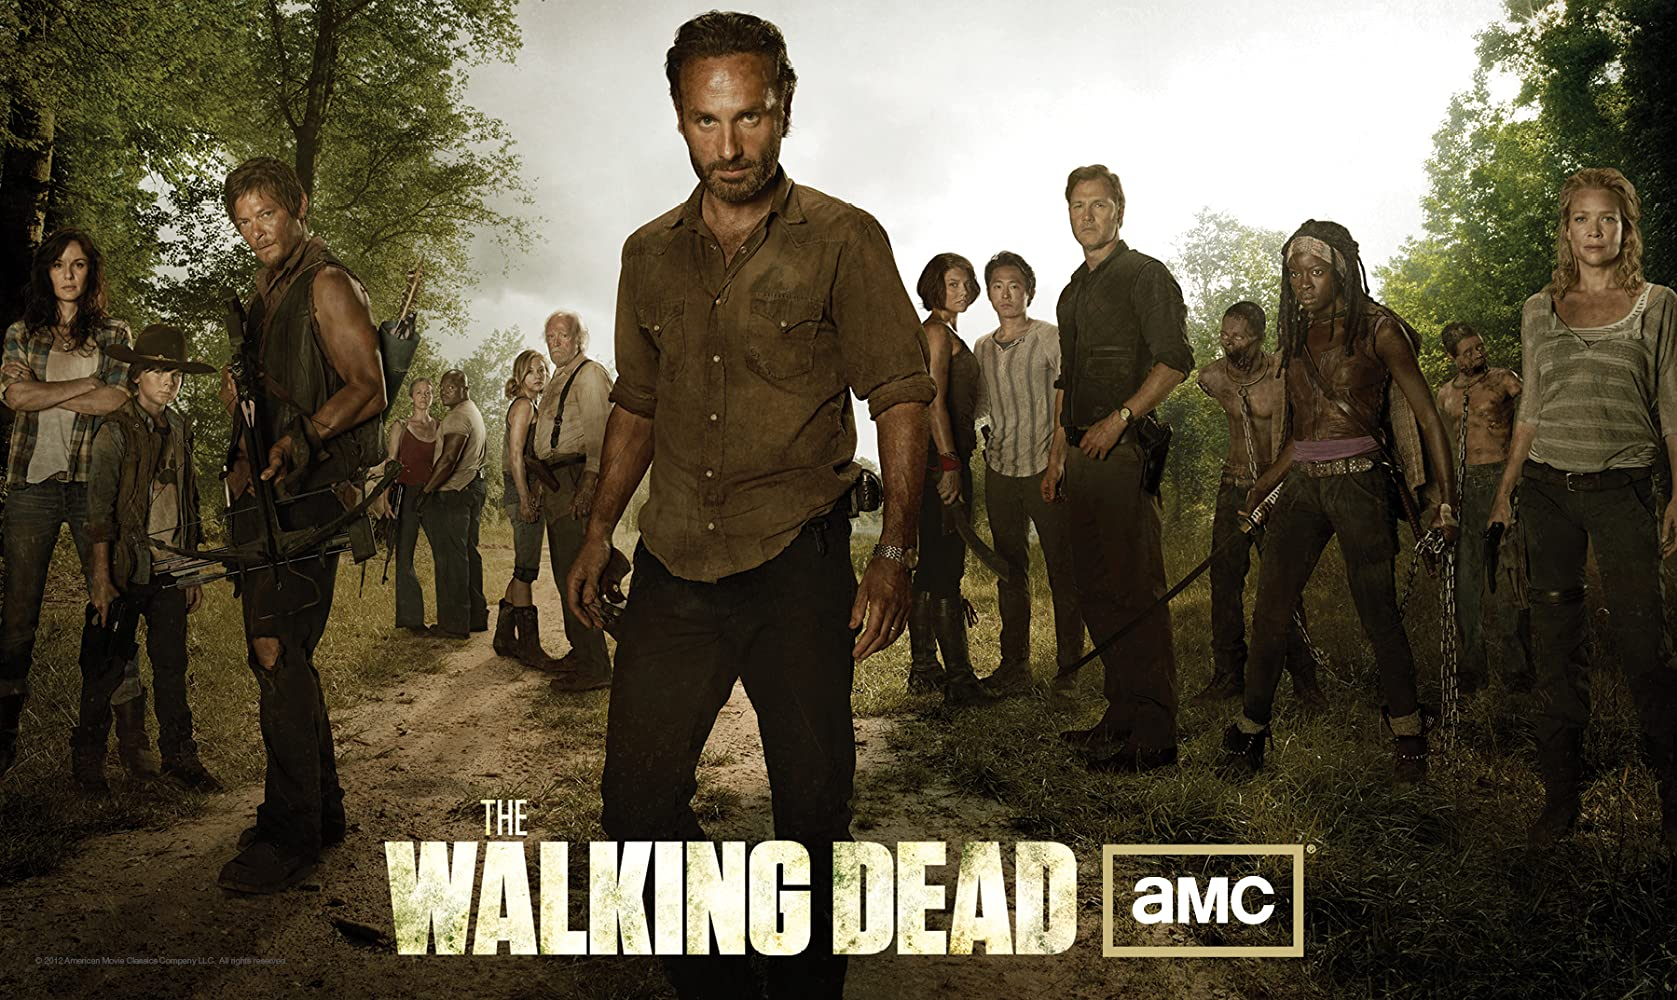 The Walking Dead S07E03 – The Cell